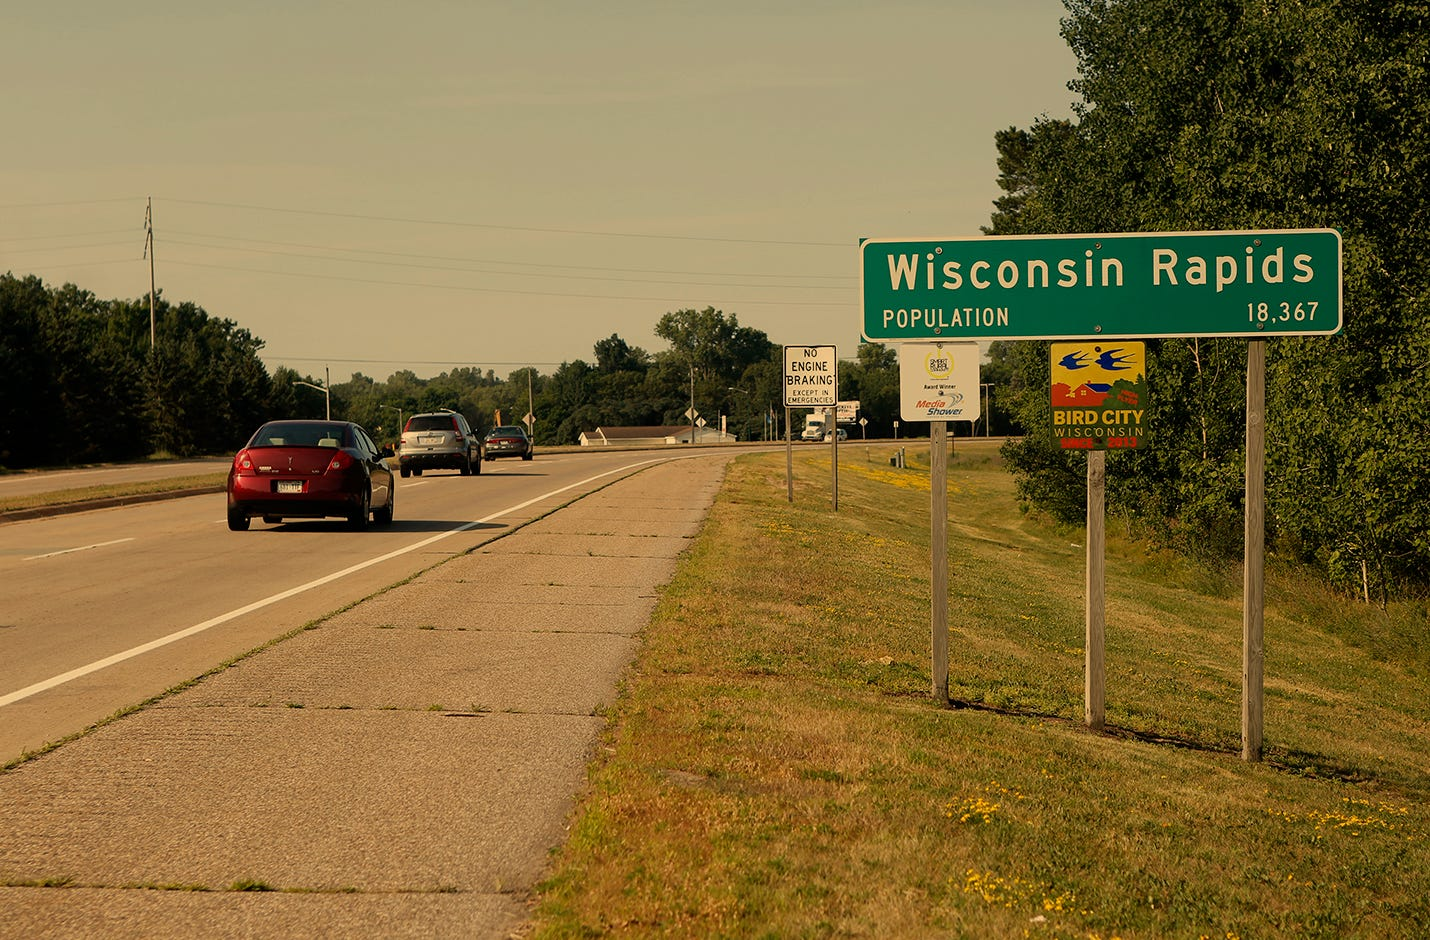 Wisconsin Rapids sits in the middle of its namesake state. Surrounded by farmland, it's the county seat for Wood County and where Cody Jackson grew up.